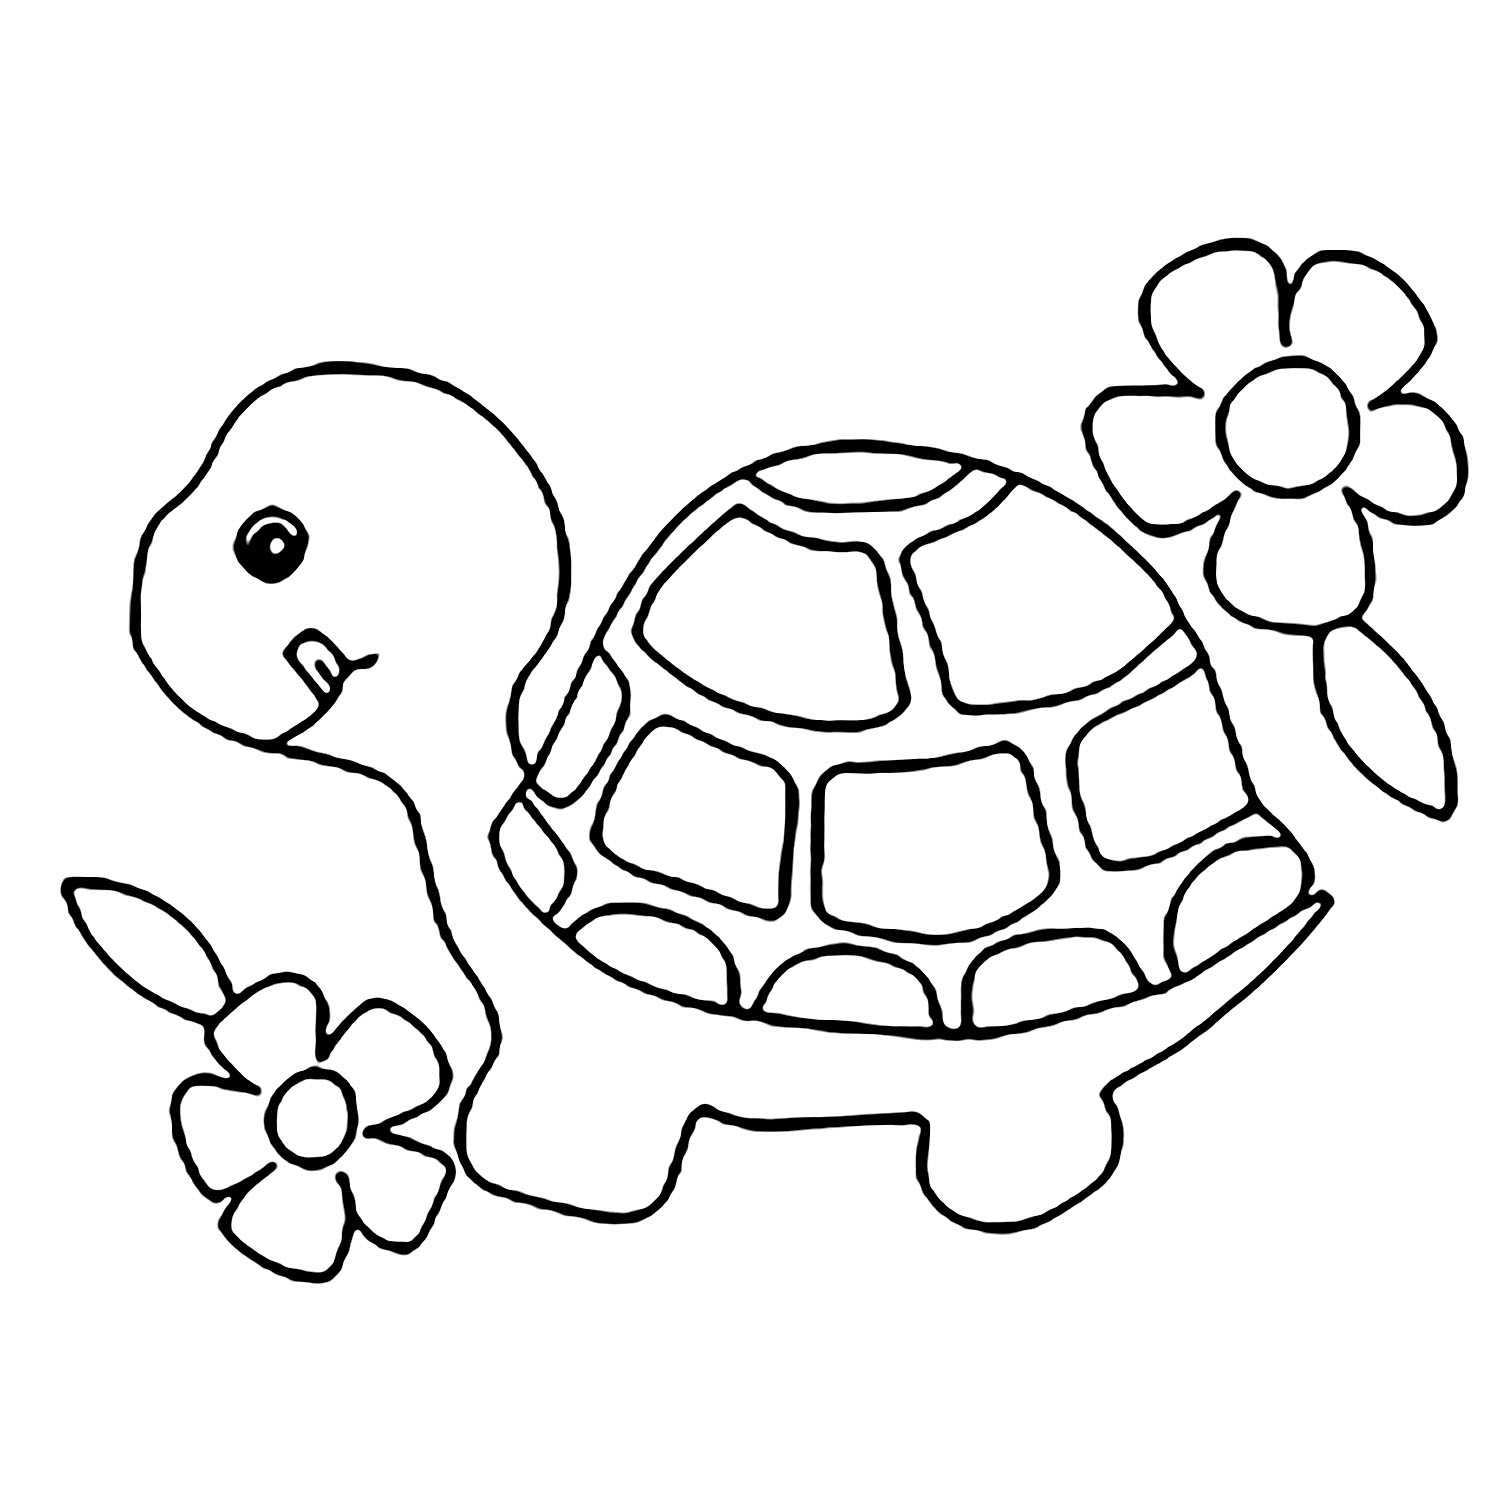 turtle coloring pictures to print turtles free to color for kids turtles kids coloring pages coloring pictures turtle to print